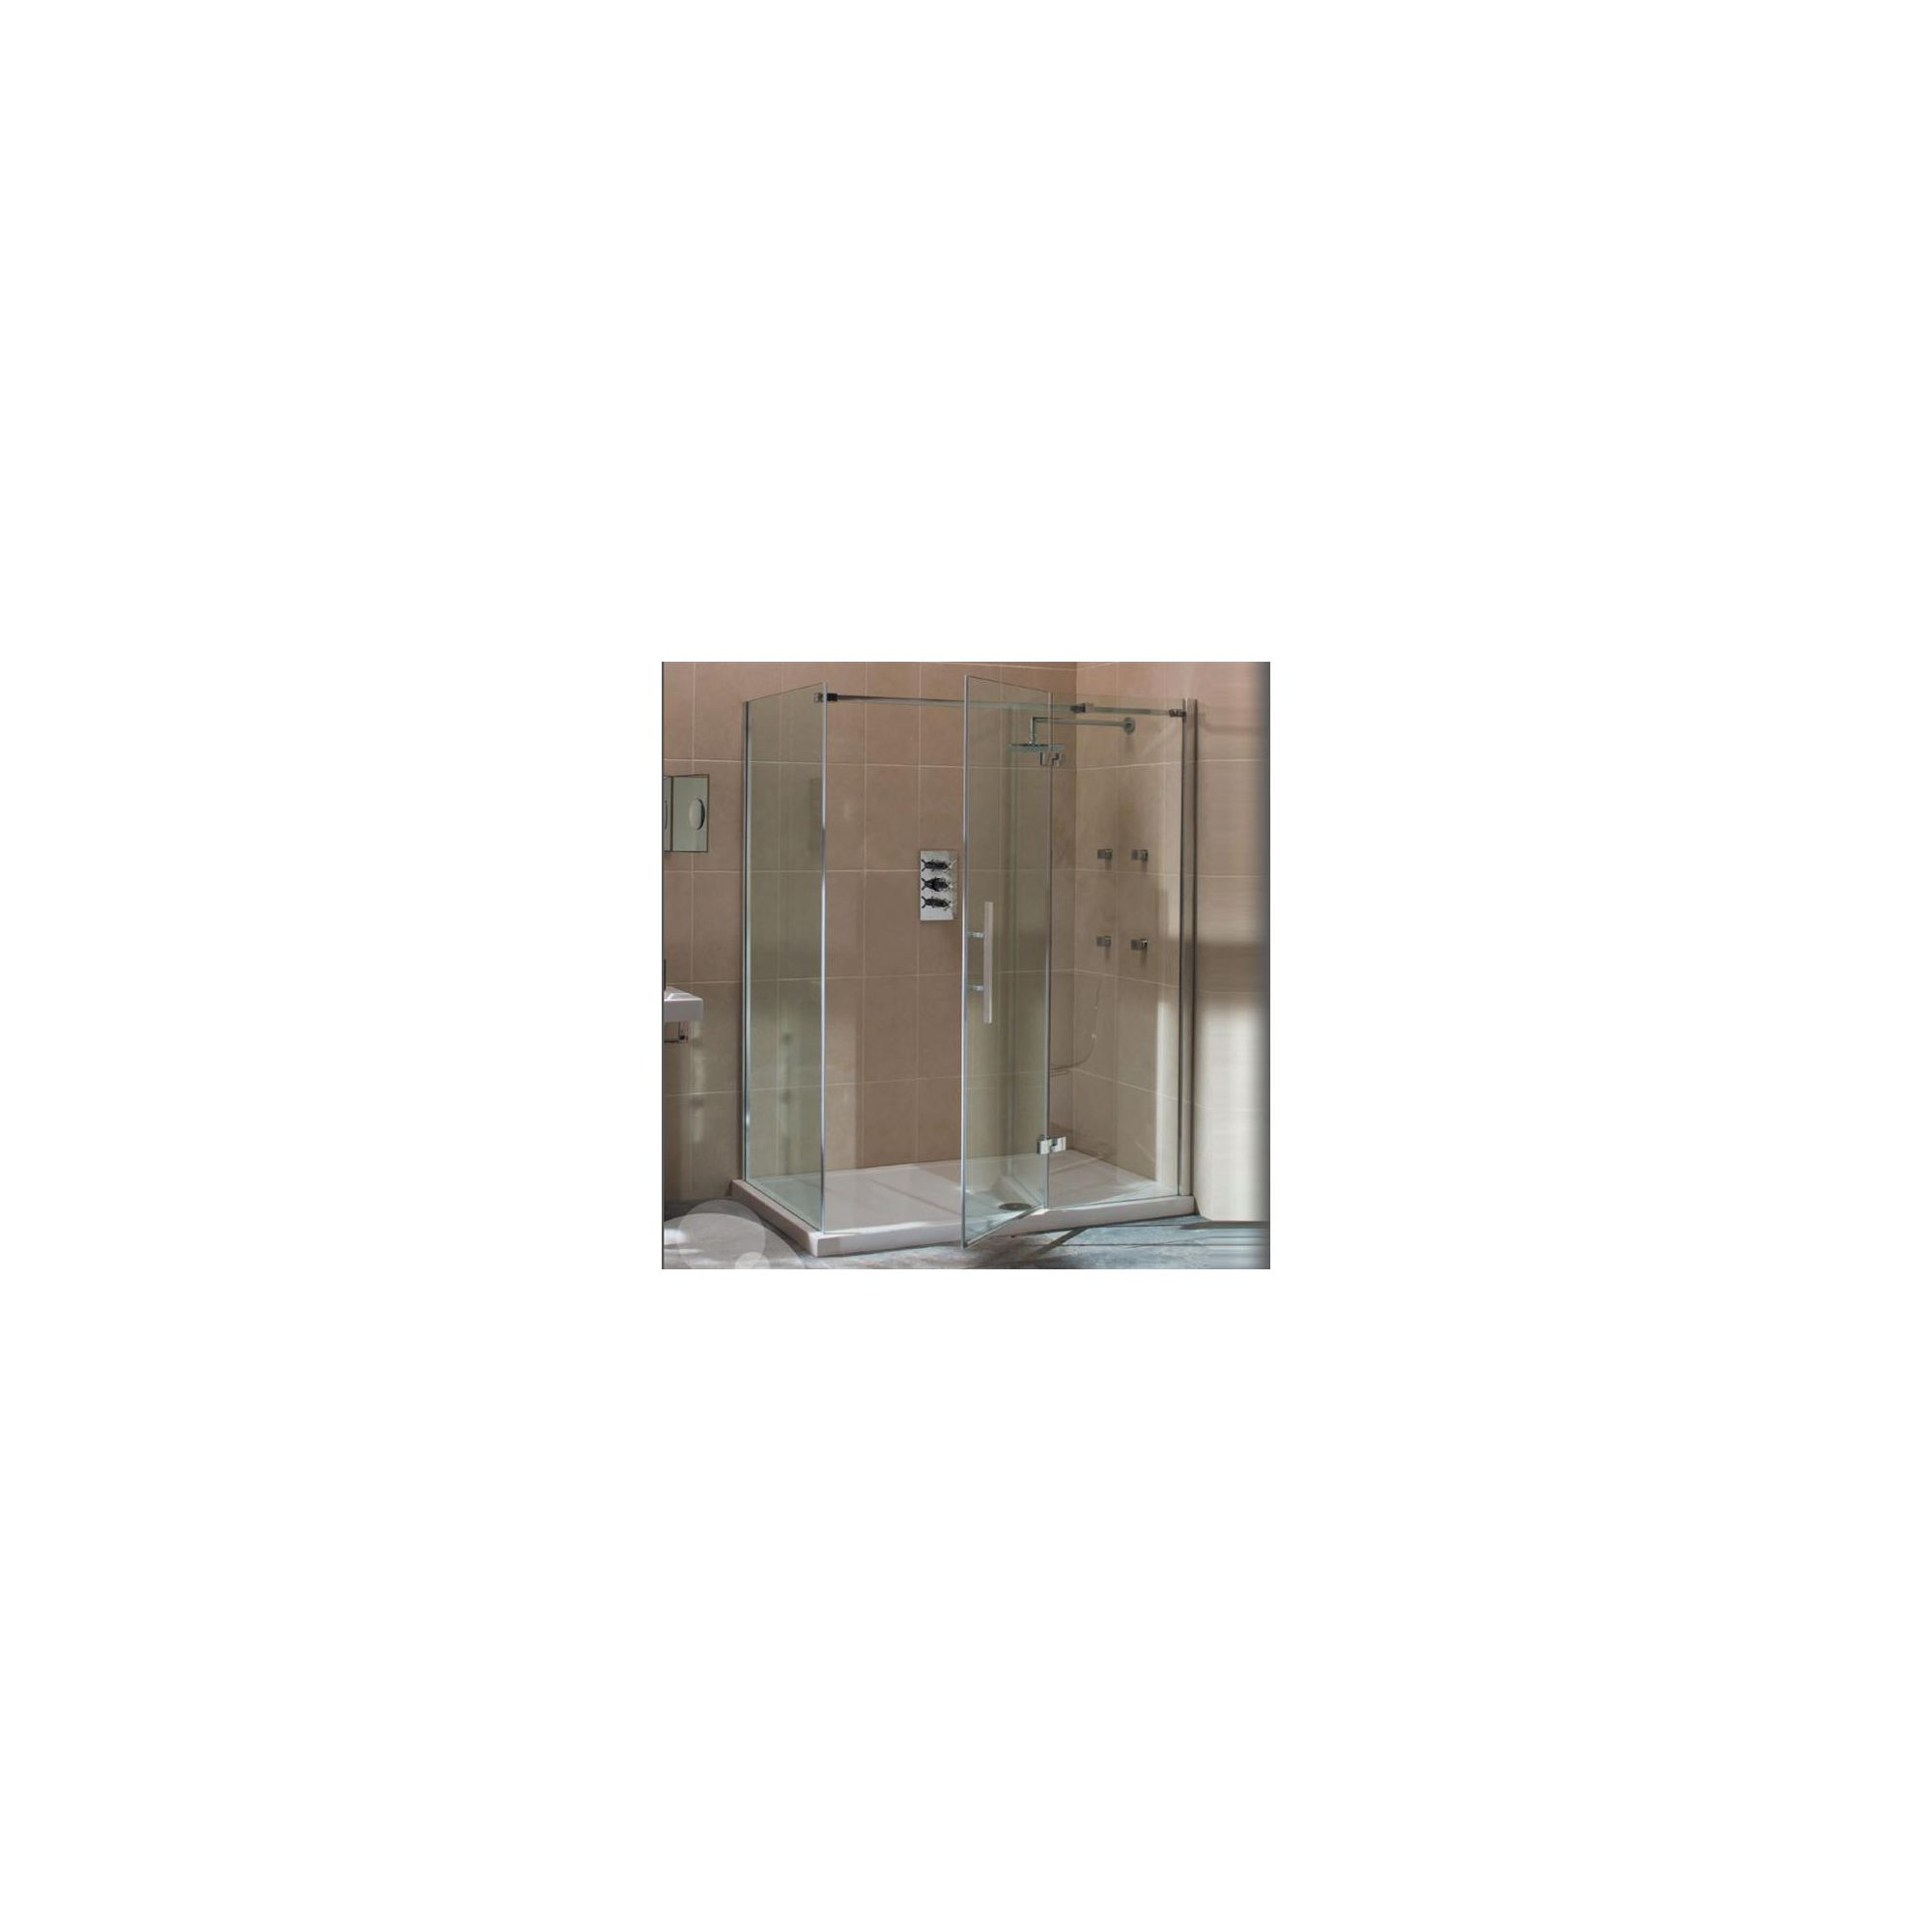 Merlyn Vivid Nine Hinged Door Shower Enclosure with Inline Panel, 1200mm x 800mm, Right Handed, Low Profile Tray, 8mm Glass at Tescos Direct